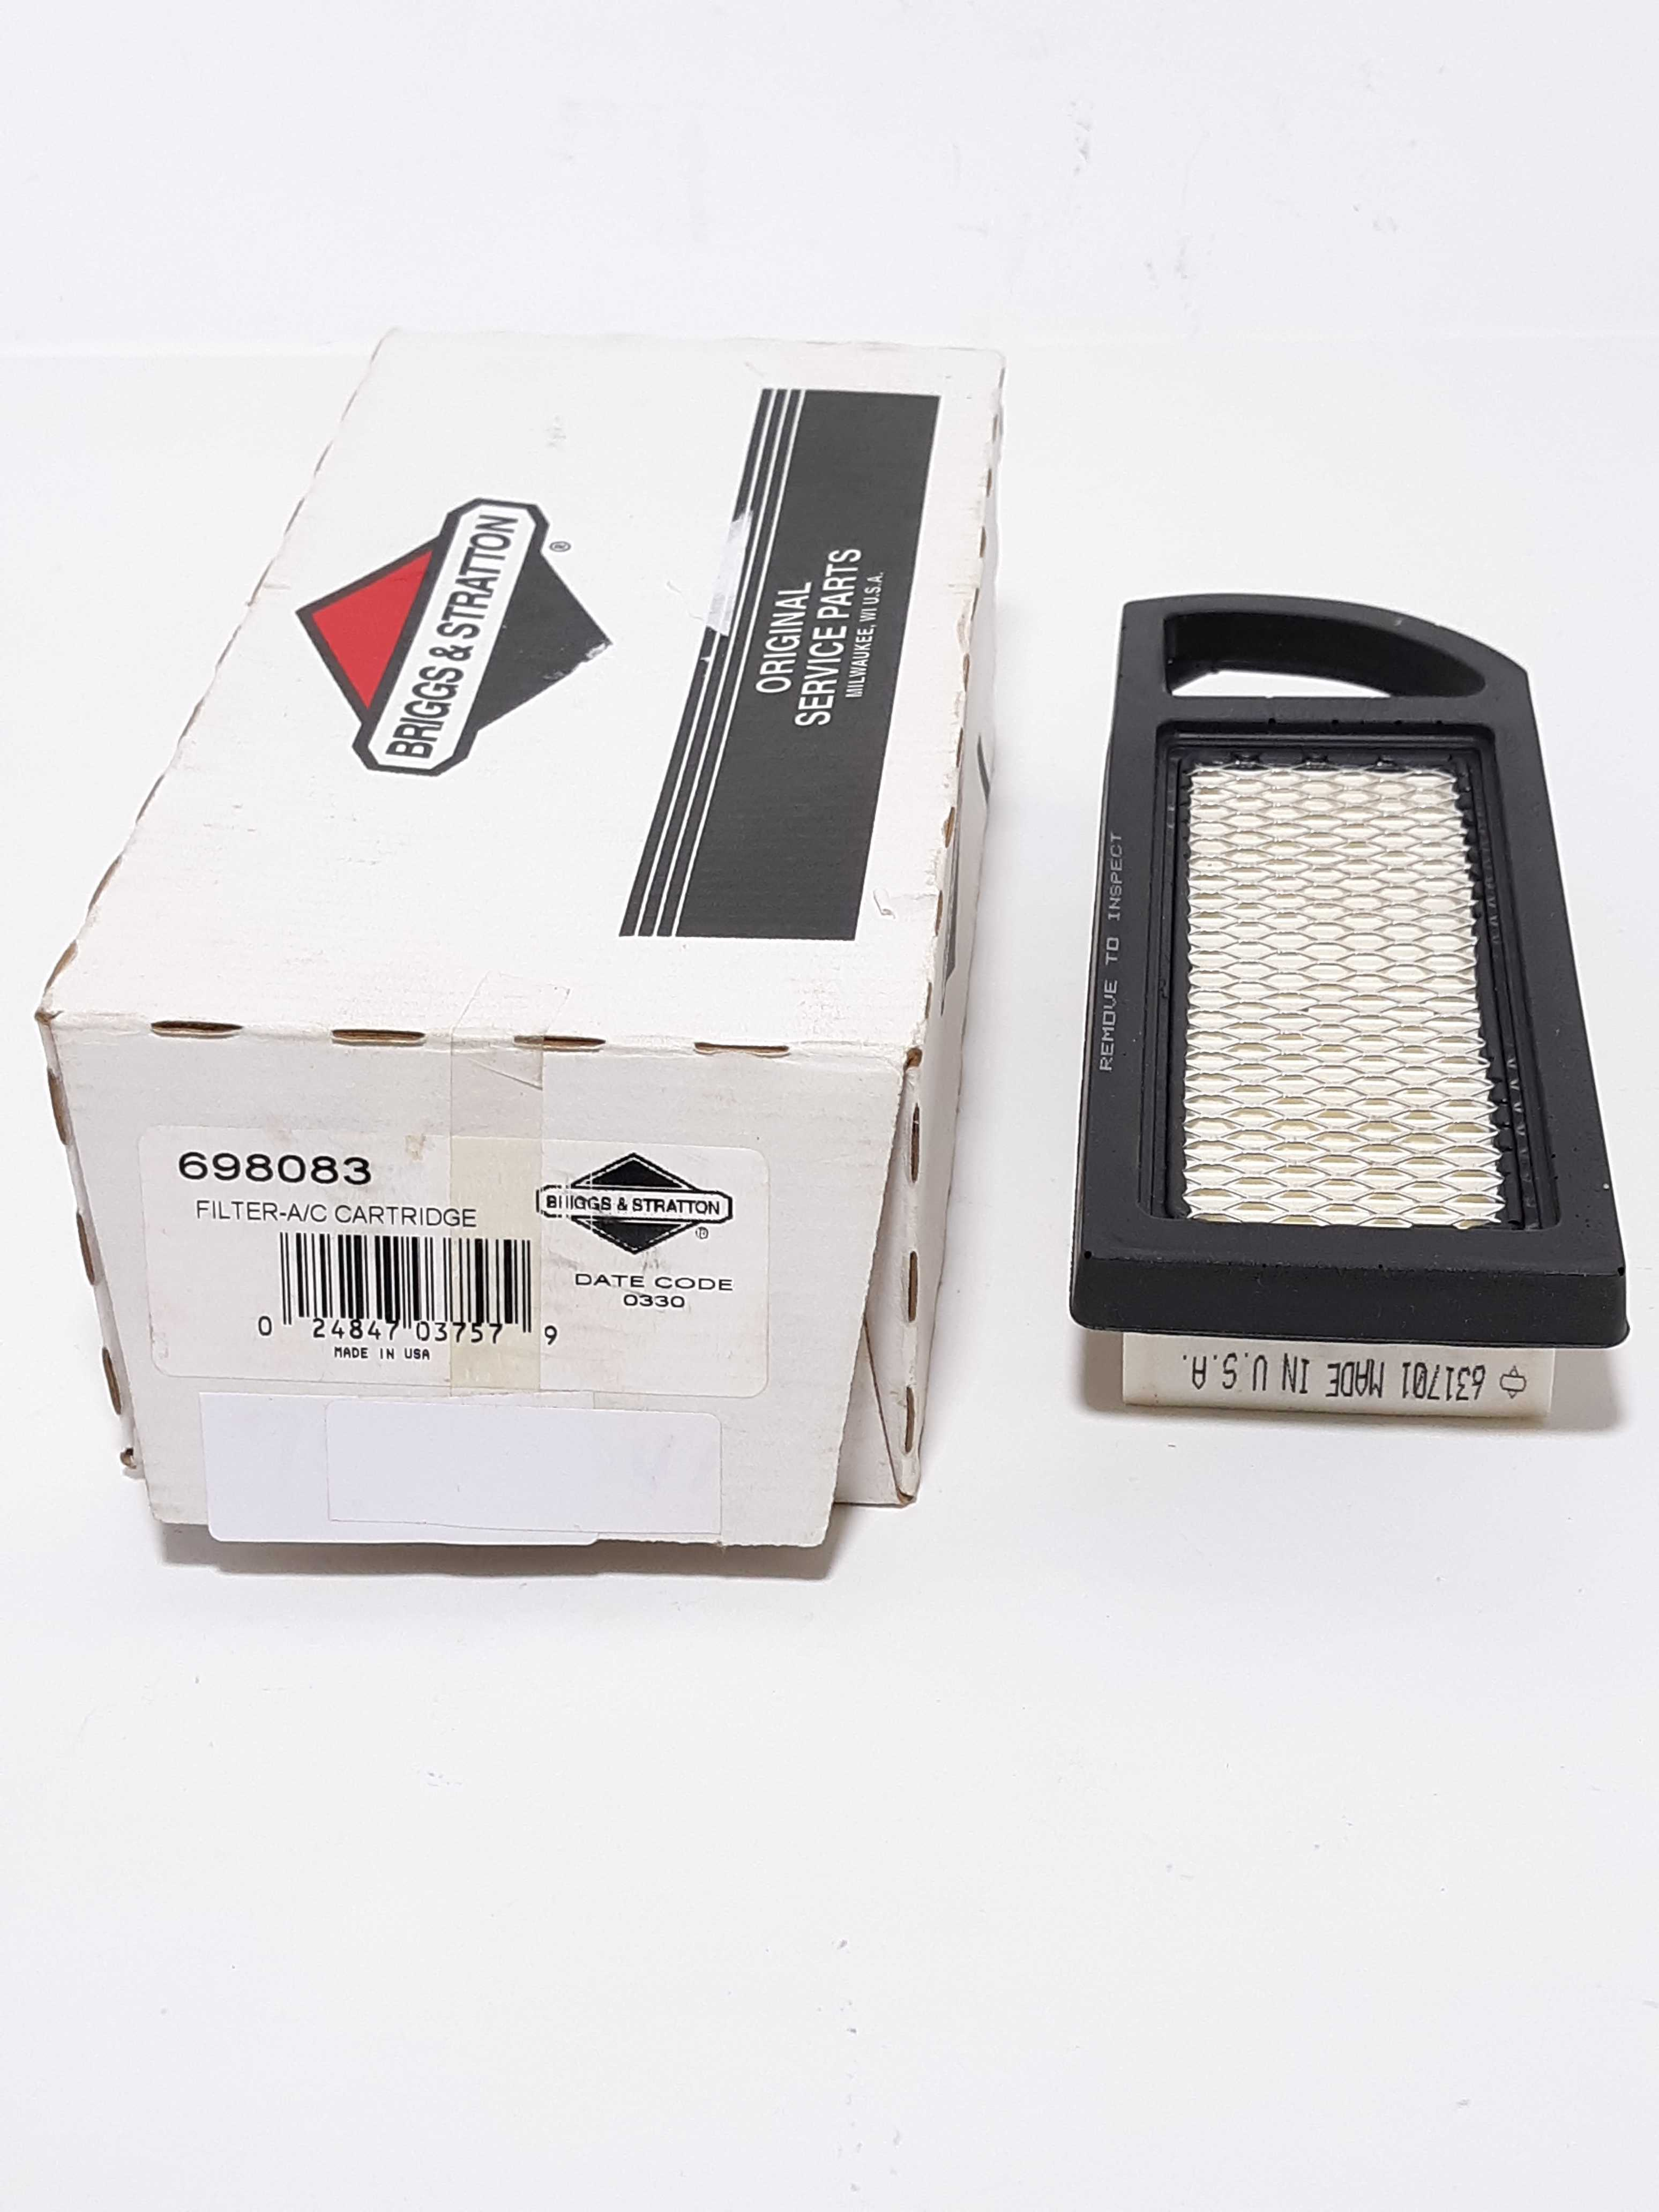 Briggs & Stratton 698083 Filter A/C Cartridge